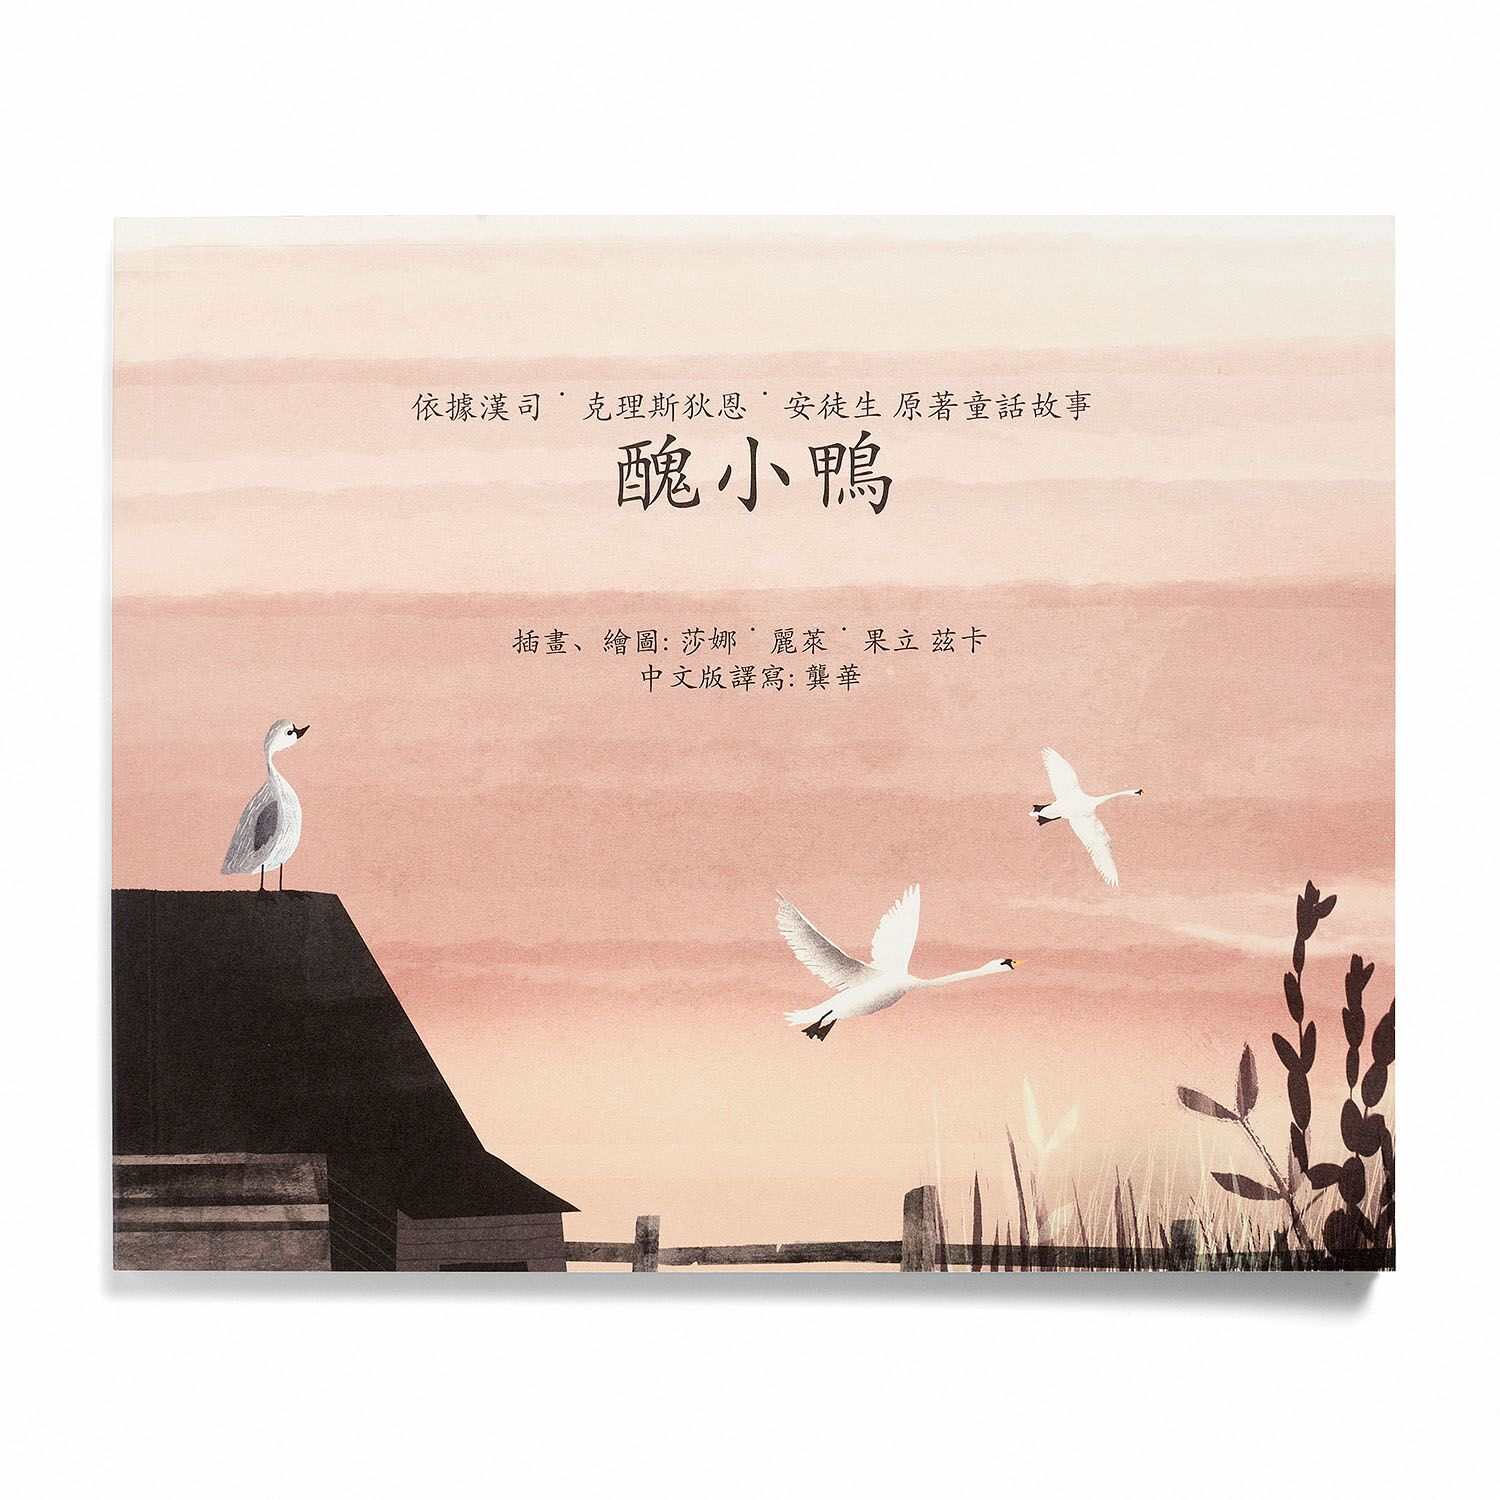 Ugly Duckling book Chinese Original, soft cover -  149.00 kr